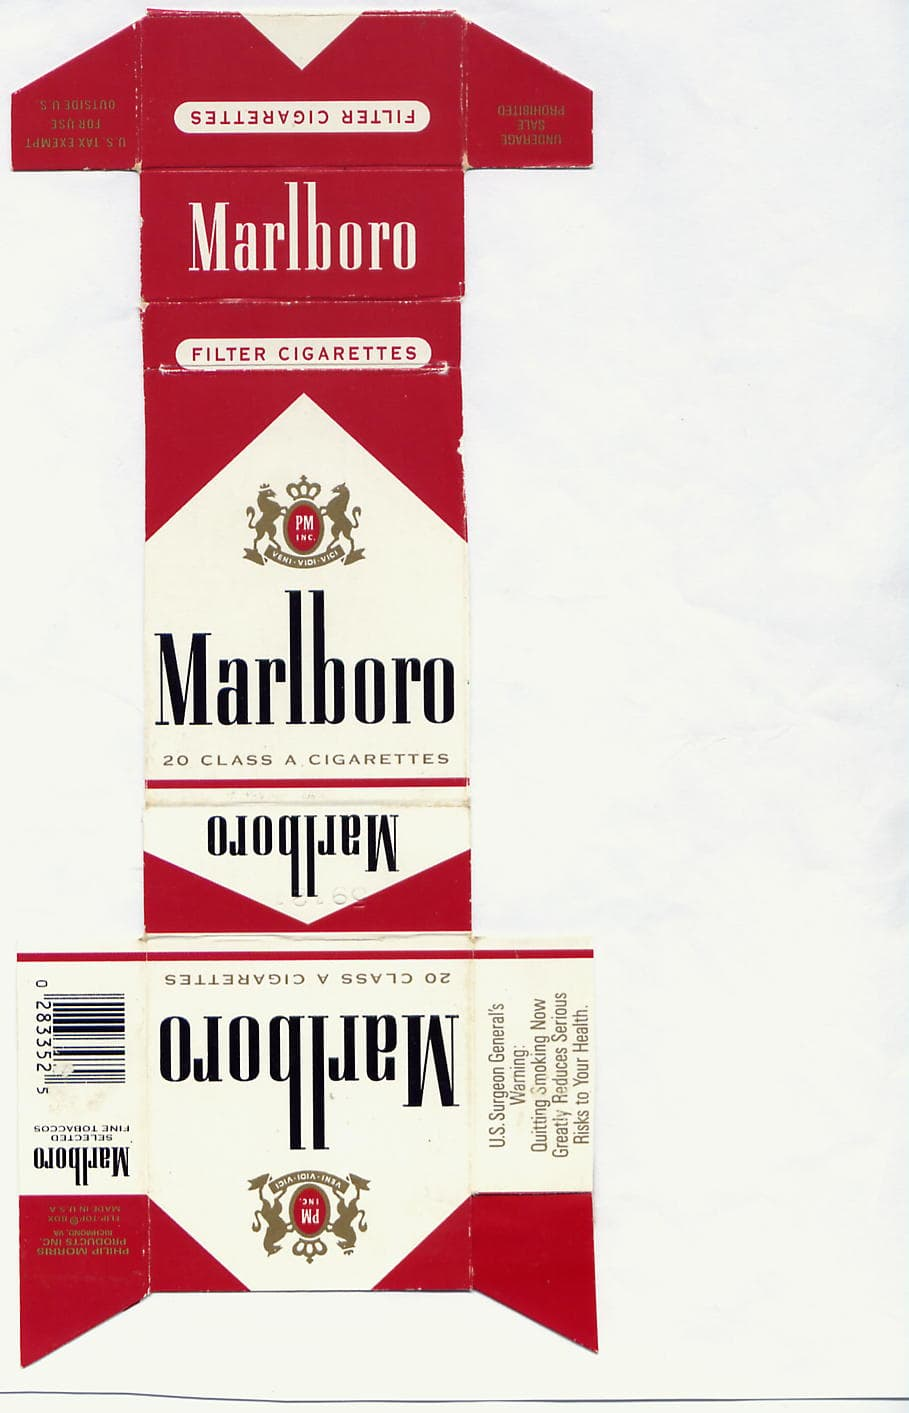 Top cigarettes R1 in New Jersey